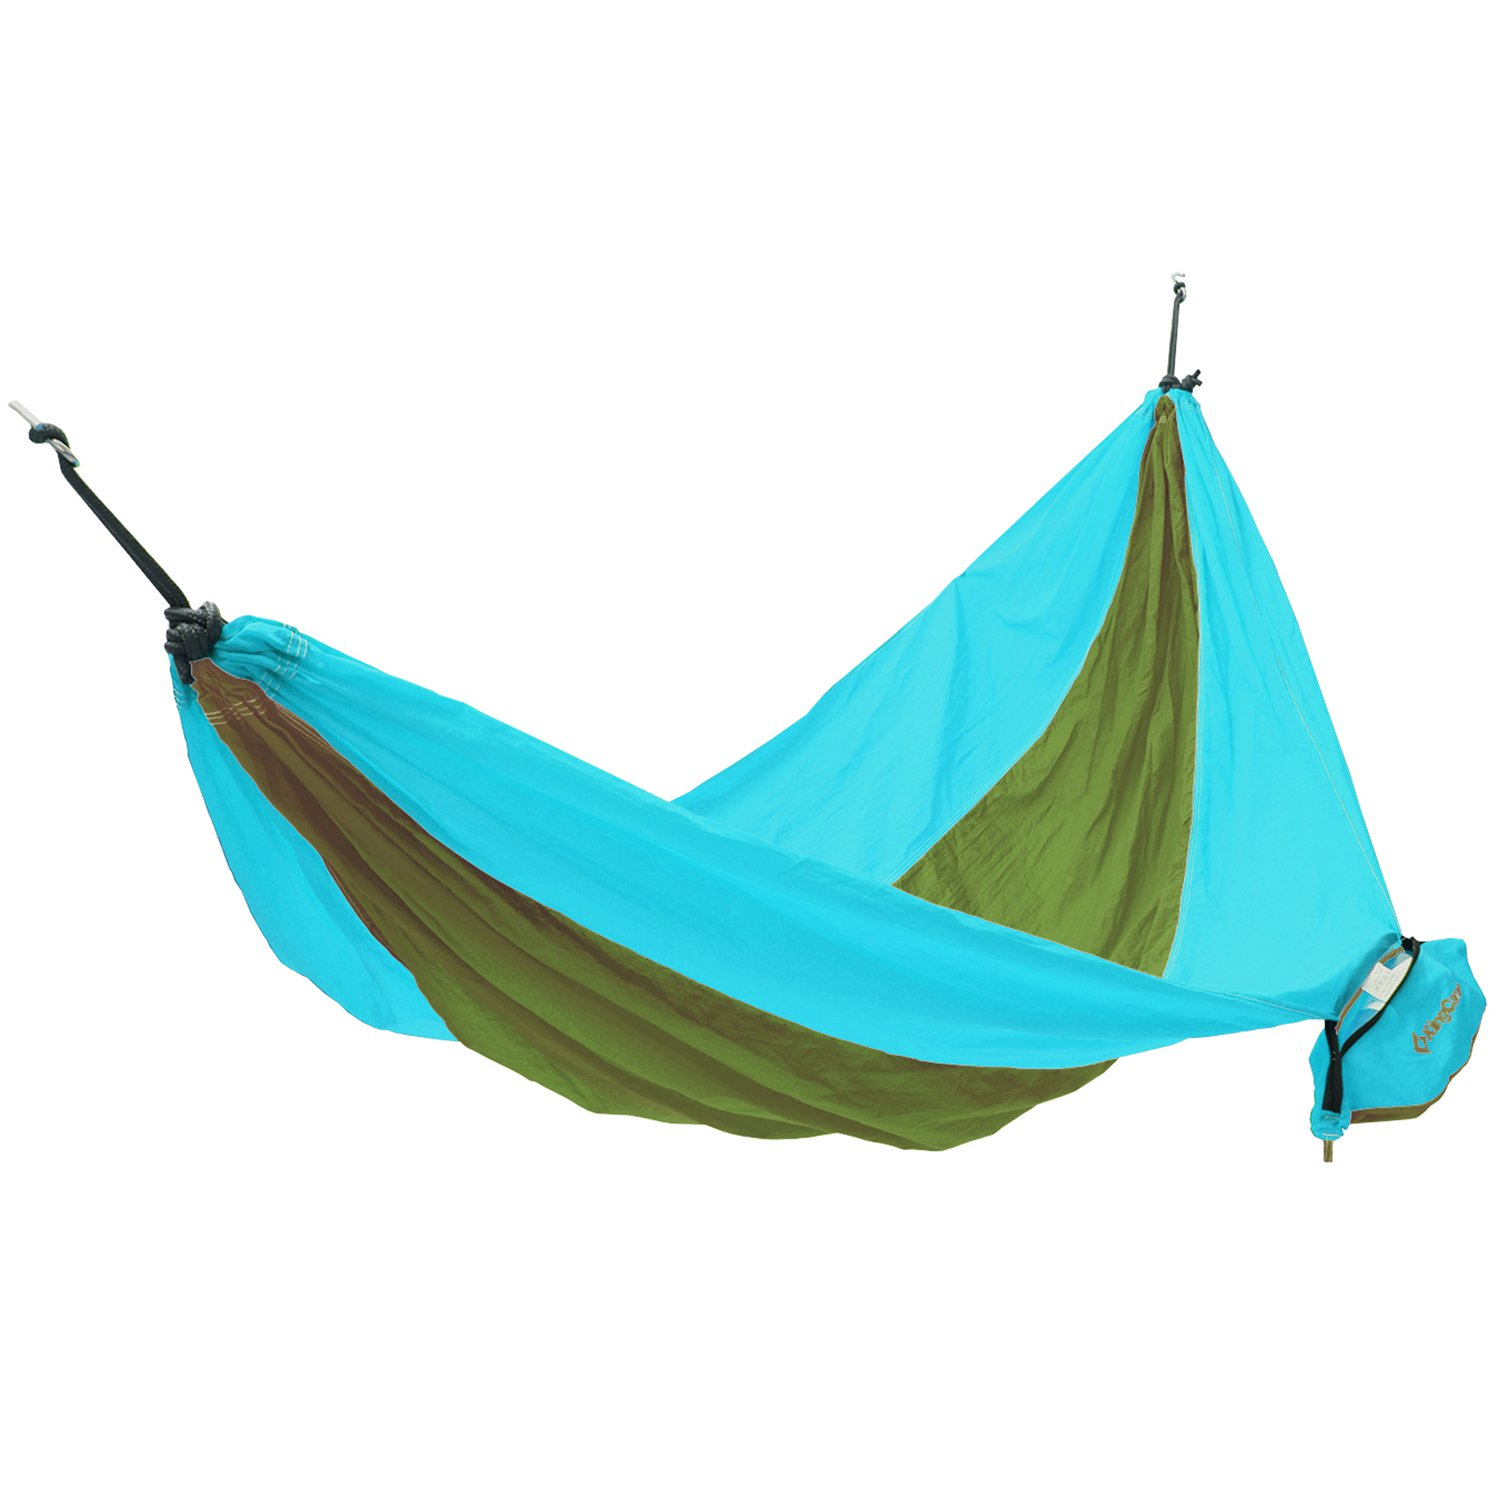 KingCamp Camping Hammock 2 Person Nylon Canvas 220lbs Swing Bed Side Bag Colorful Stripes Parachute Outdoor Camping Patio Yard Beach